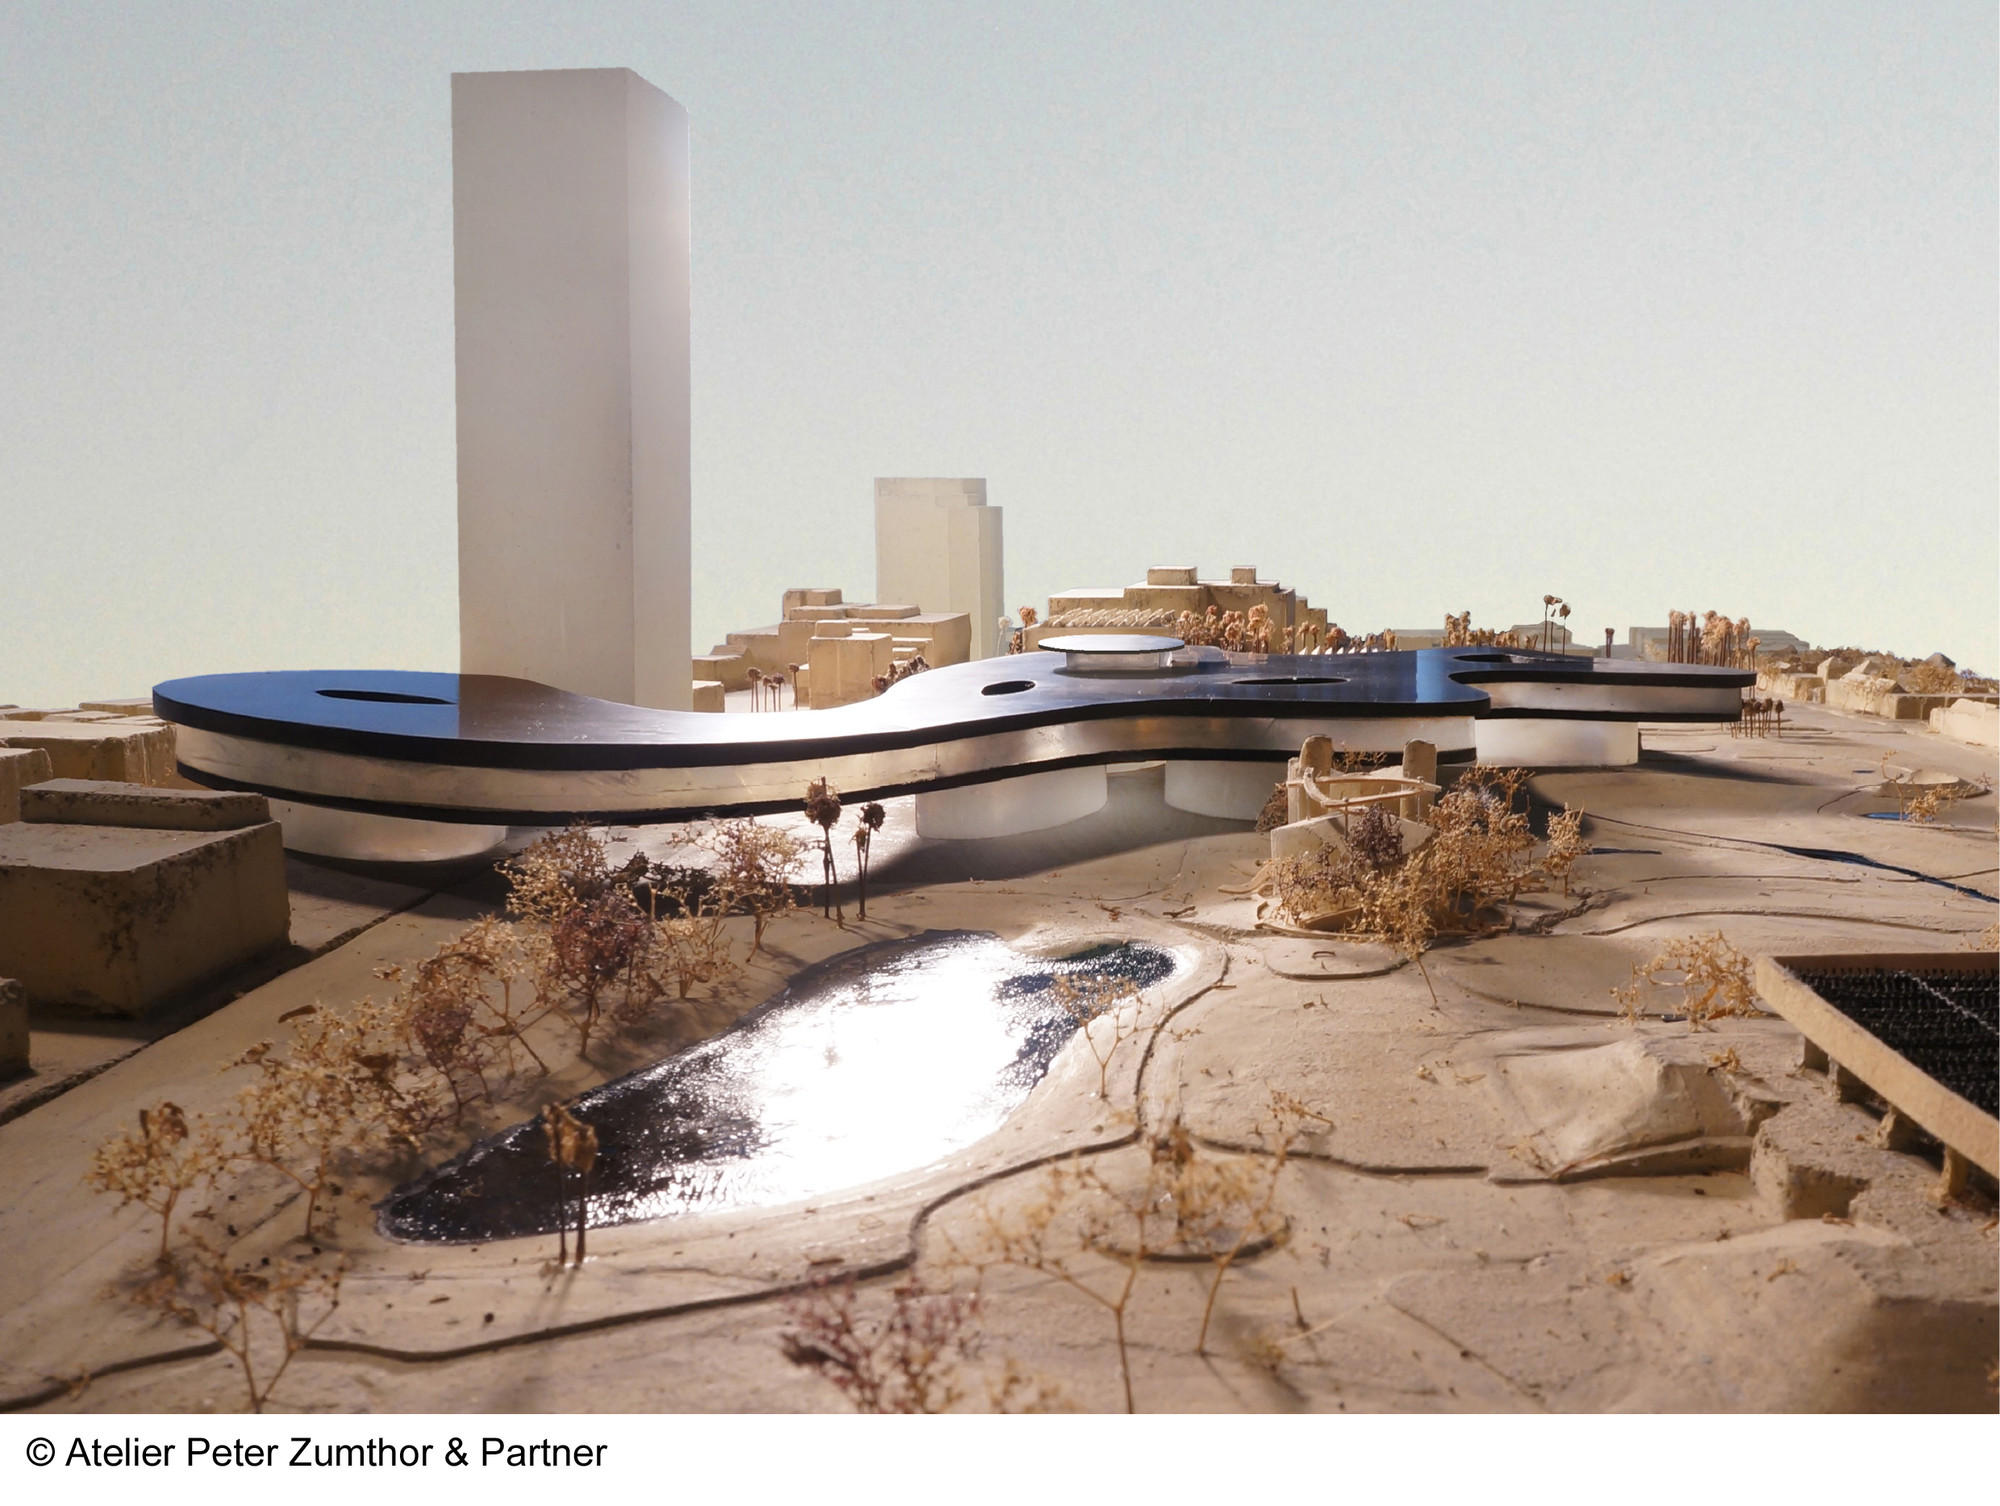 Peter Zumthor & LACMA Unveil Revised Museum Design, Model of the new design. Image © Atelier Peter Zumthor & Partner